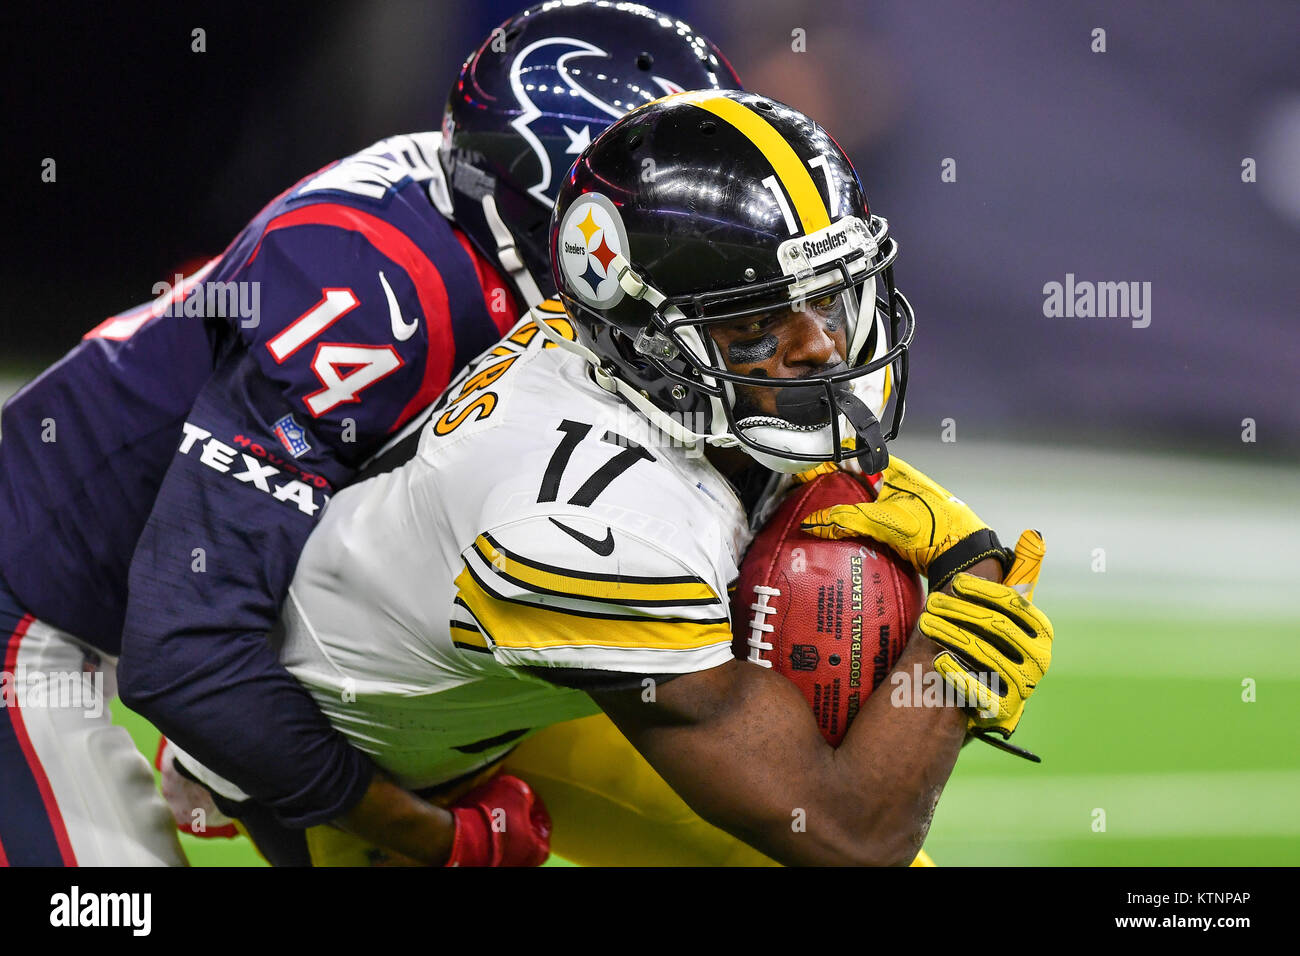 ac8857d22 ... Pittsburgh Steelers wide receiver Eli Rogers (17) is tackled by Houston  Texans wide receiver ...